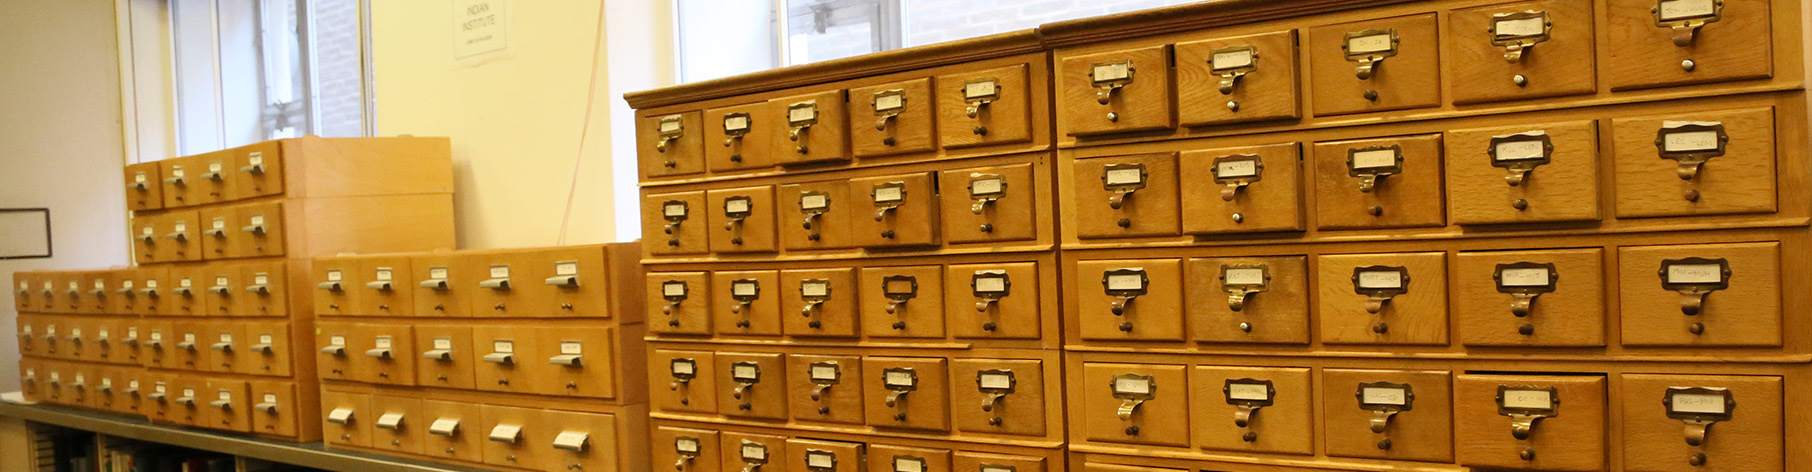 Rows of small wooden drawers containing the card catalogue